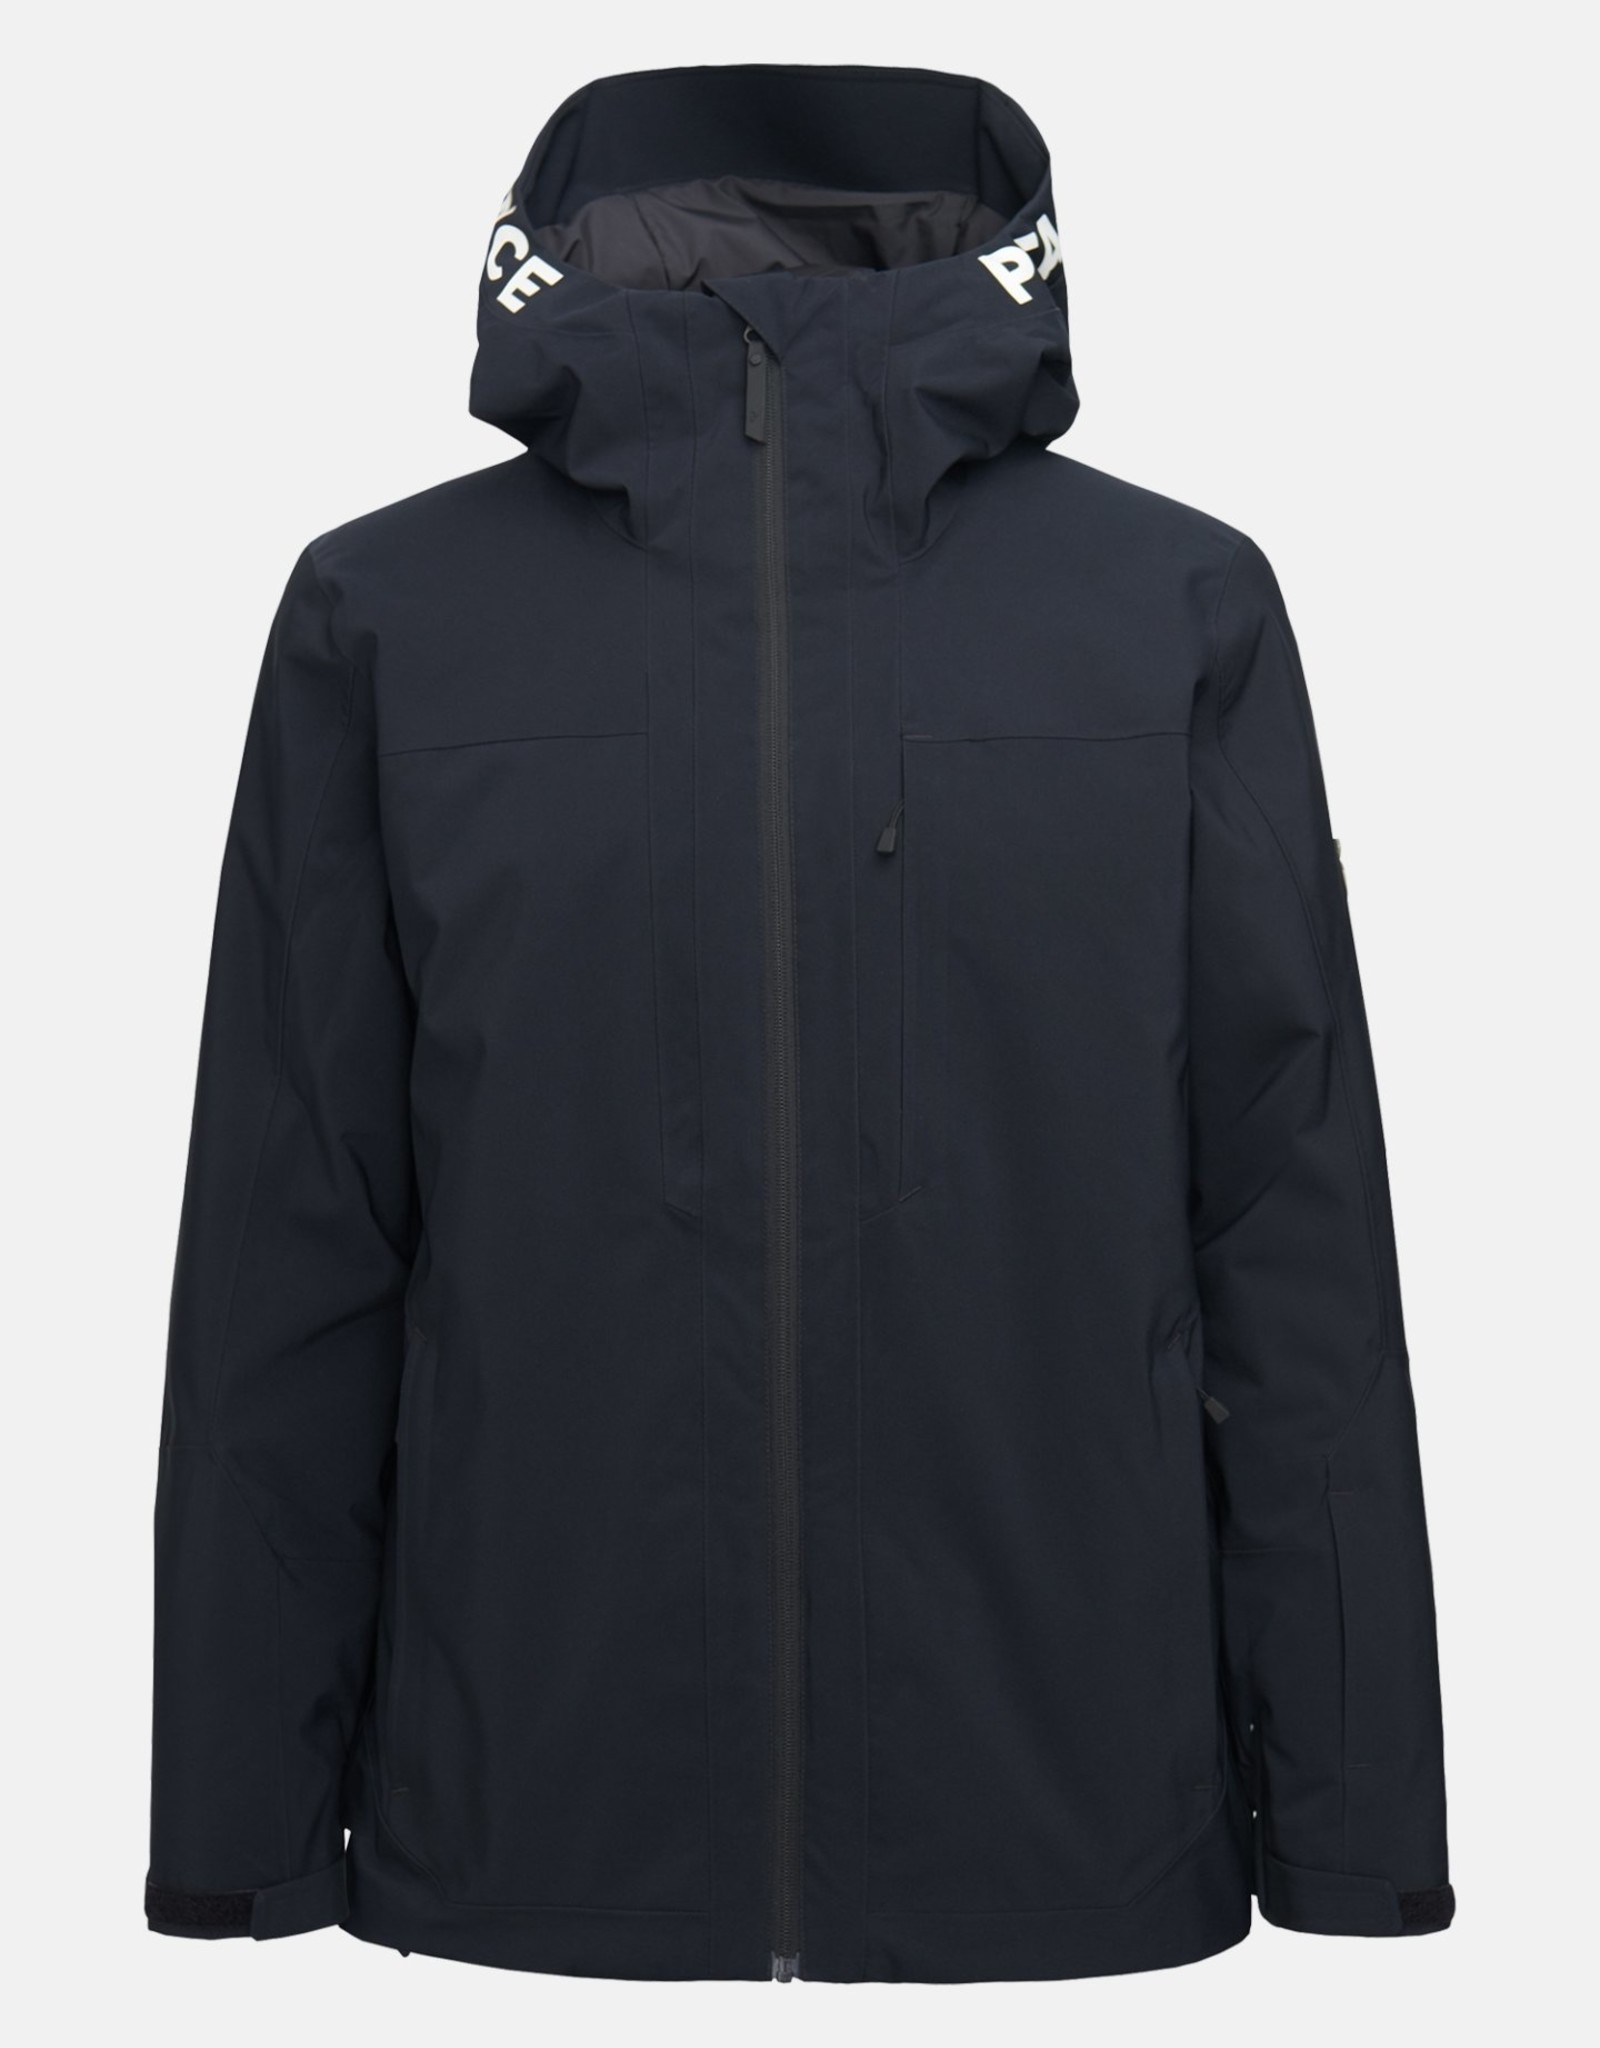 Peak Performance Peak Performance Men's Rider Ski Jacket  -W2020